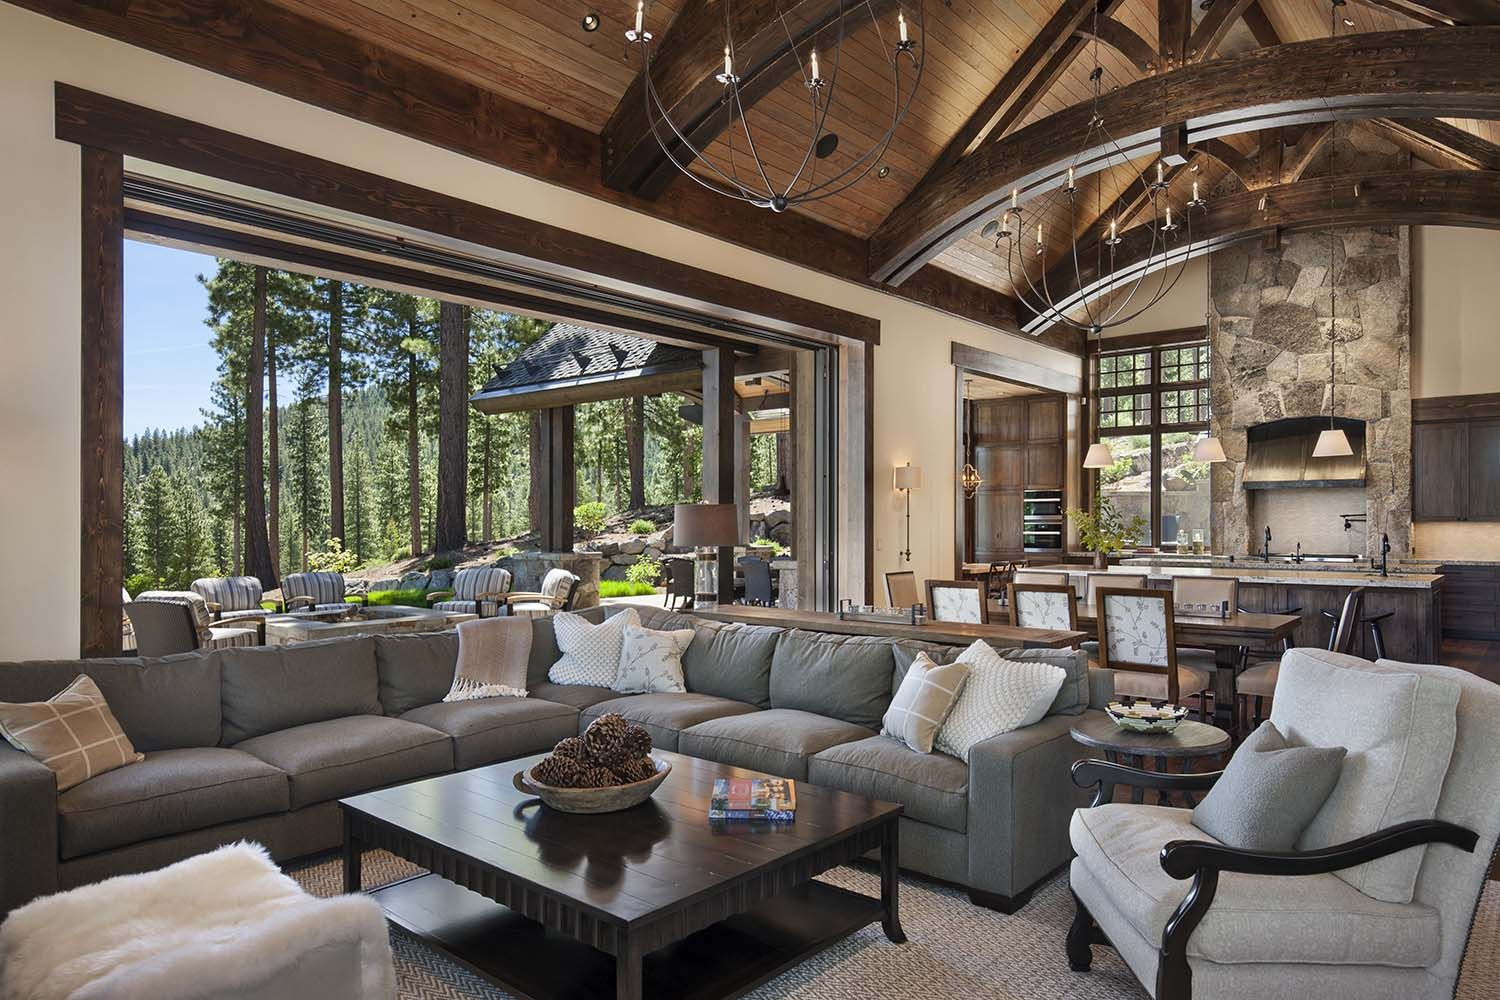 Gorgeous Rustic Mountain Retreat With Stylish Interiors In Martis Camp